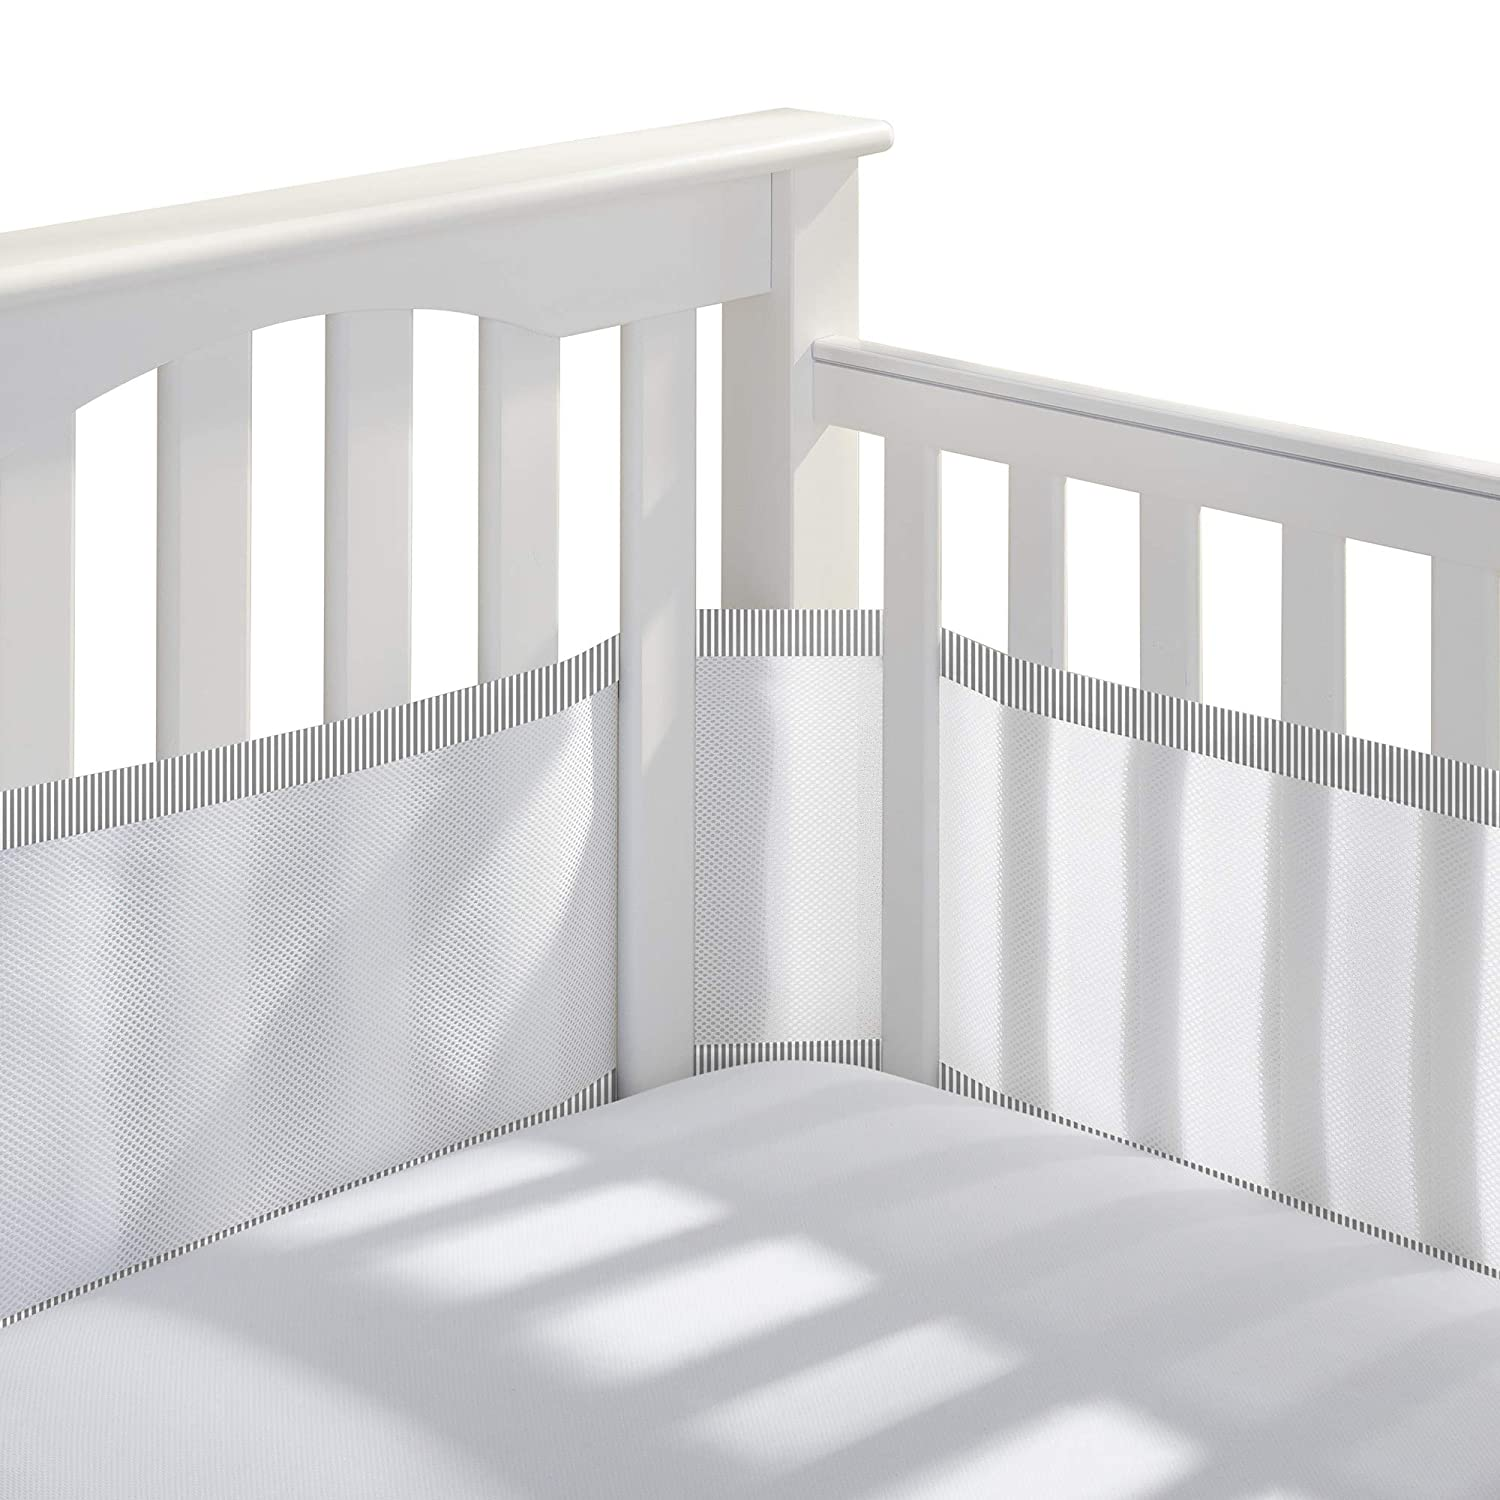 BreathableBaby Classic Breathable Mesh Crib Liner – White and Gray Seersucker Trim